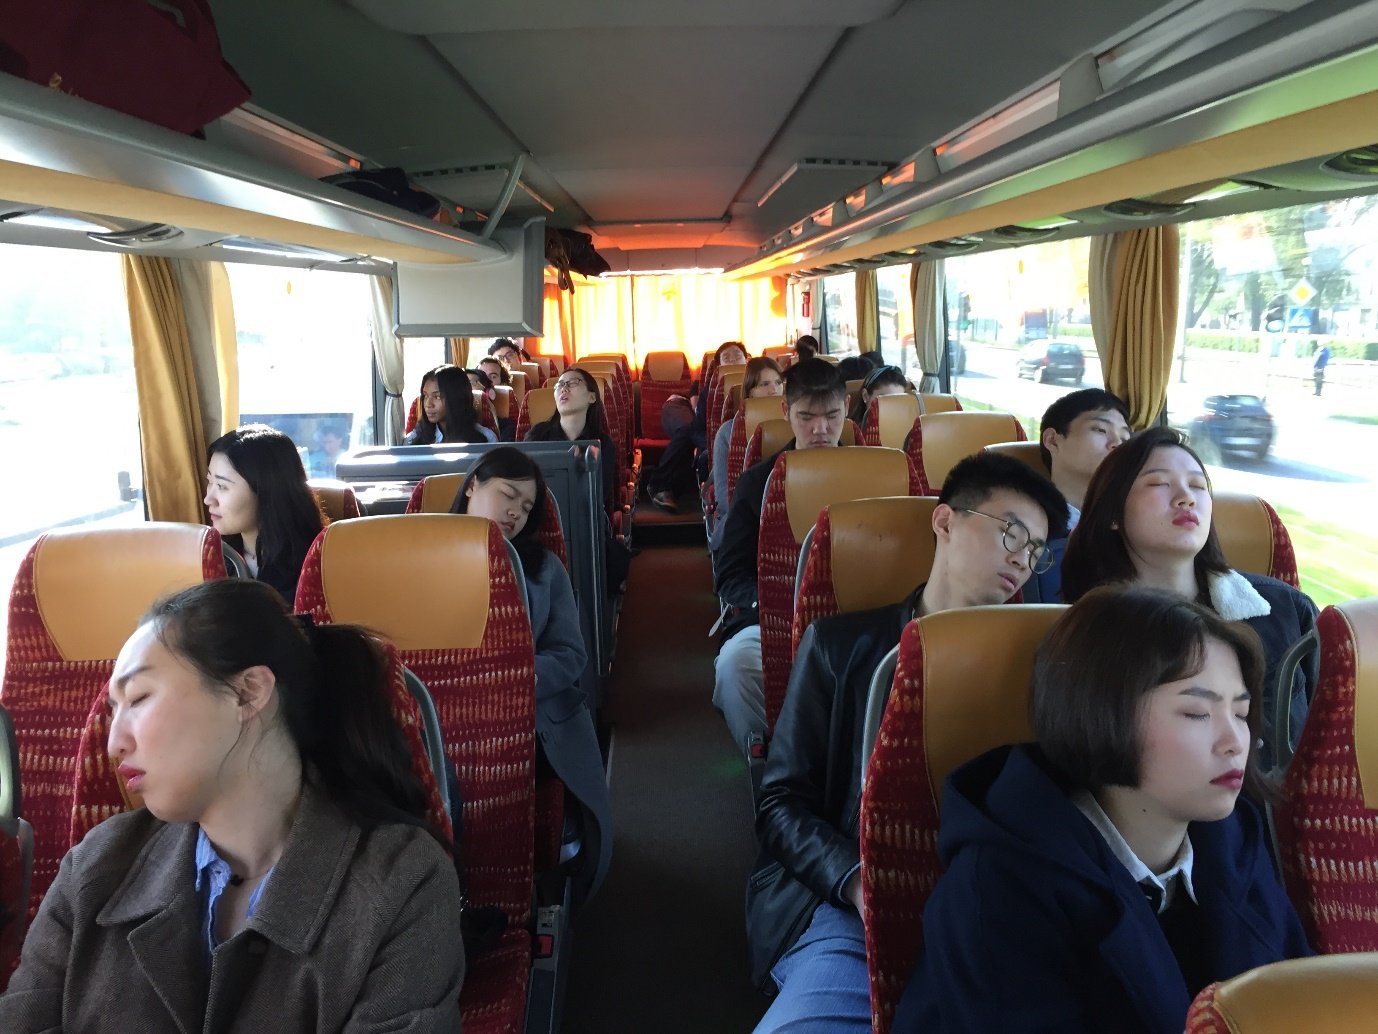 Logistics and Supply Chain Management students tired on the final day of their study tour to Wroclaw in Poland